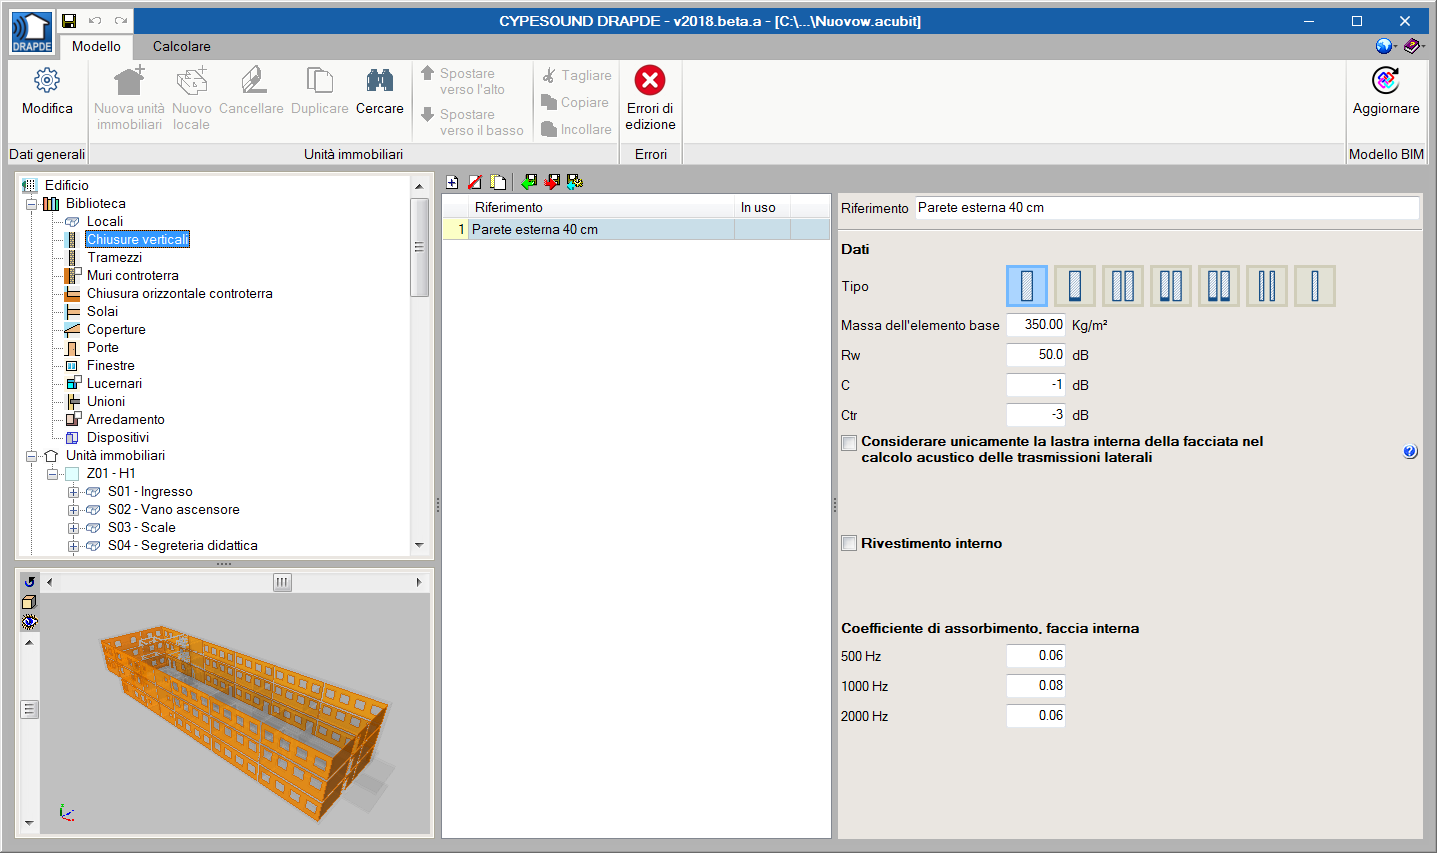 athsoftware-suite-bim-cypesound-DRAPDE screenshot1